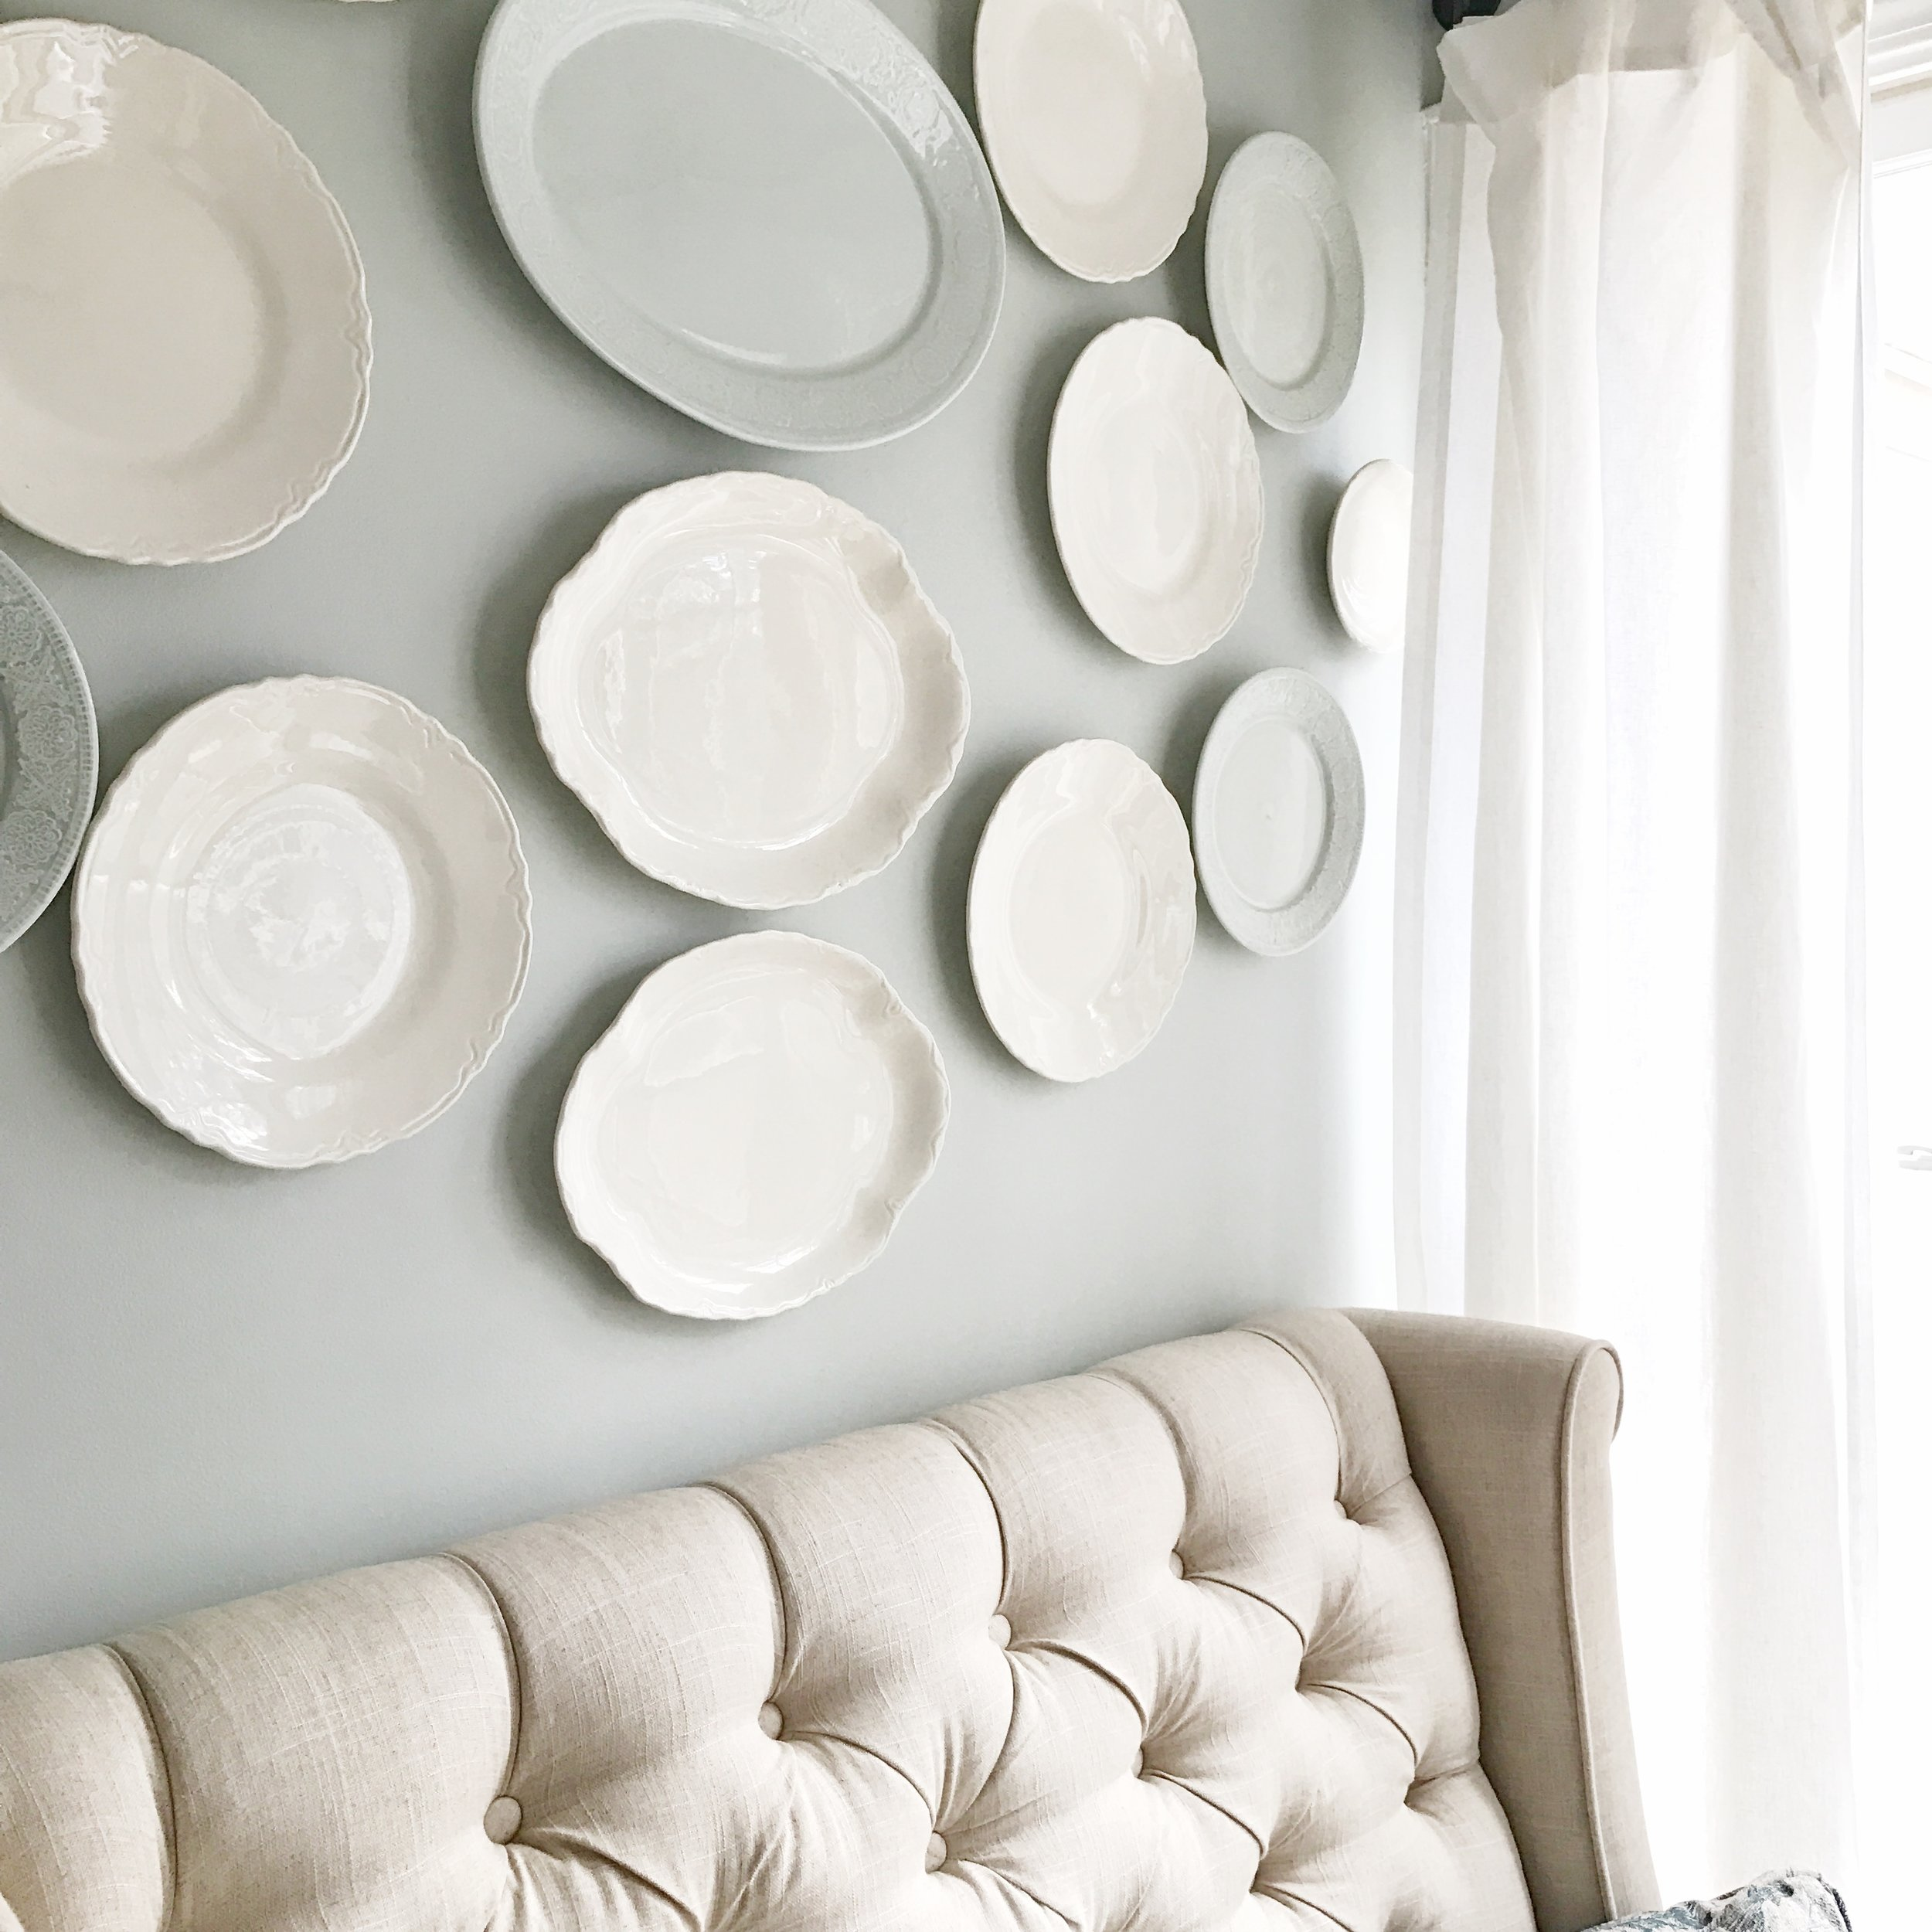 Farmshouse Breakfast Nook with a French Flair- DIY Plate Wall. Read More on Plum Pretty Decor and Design's Blog.